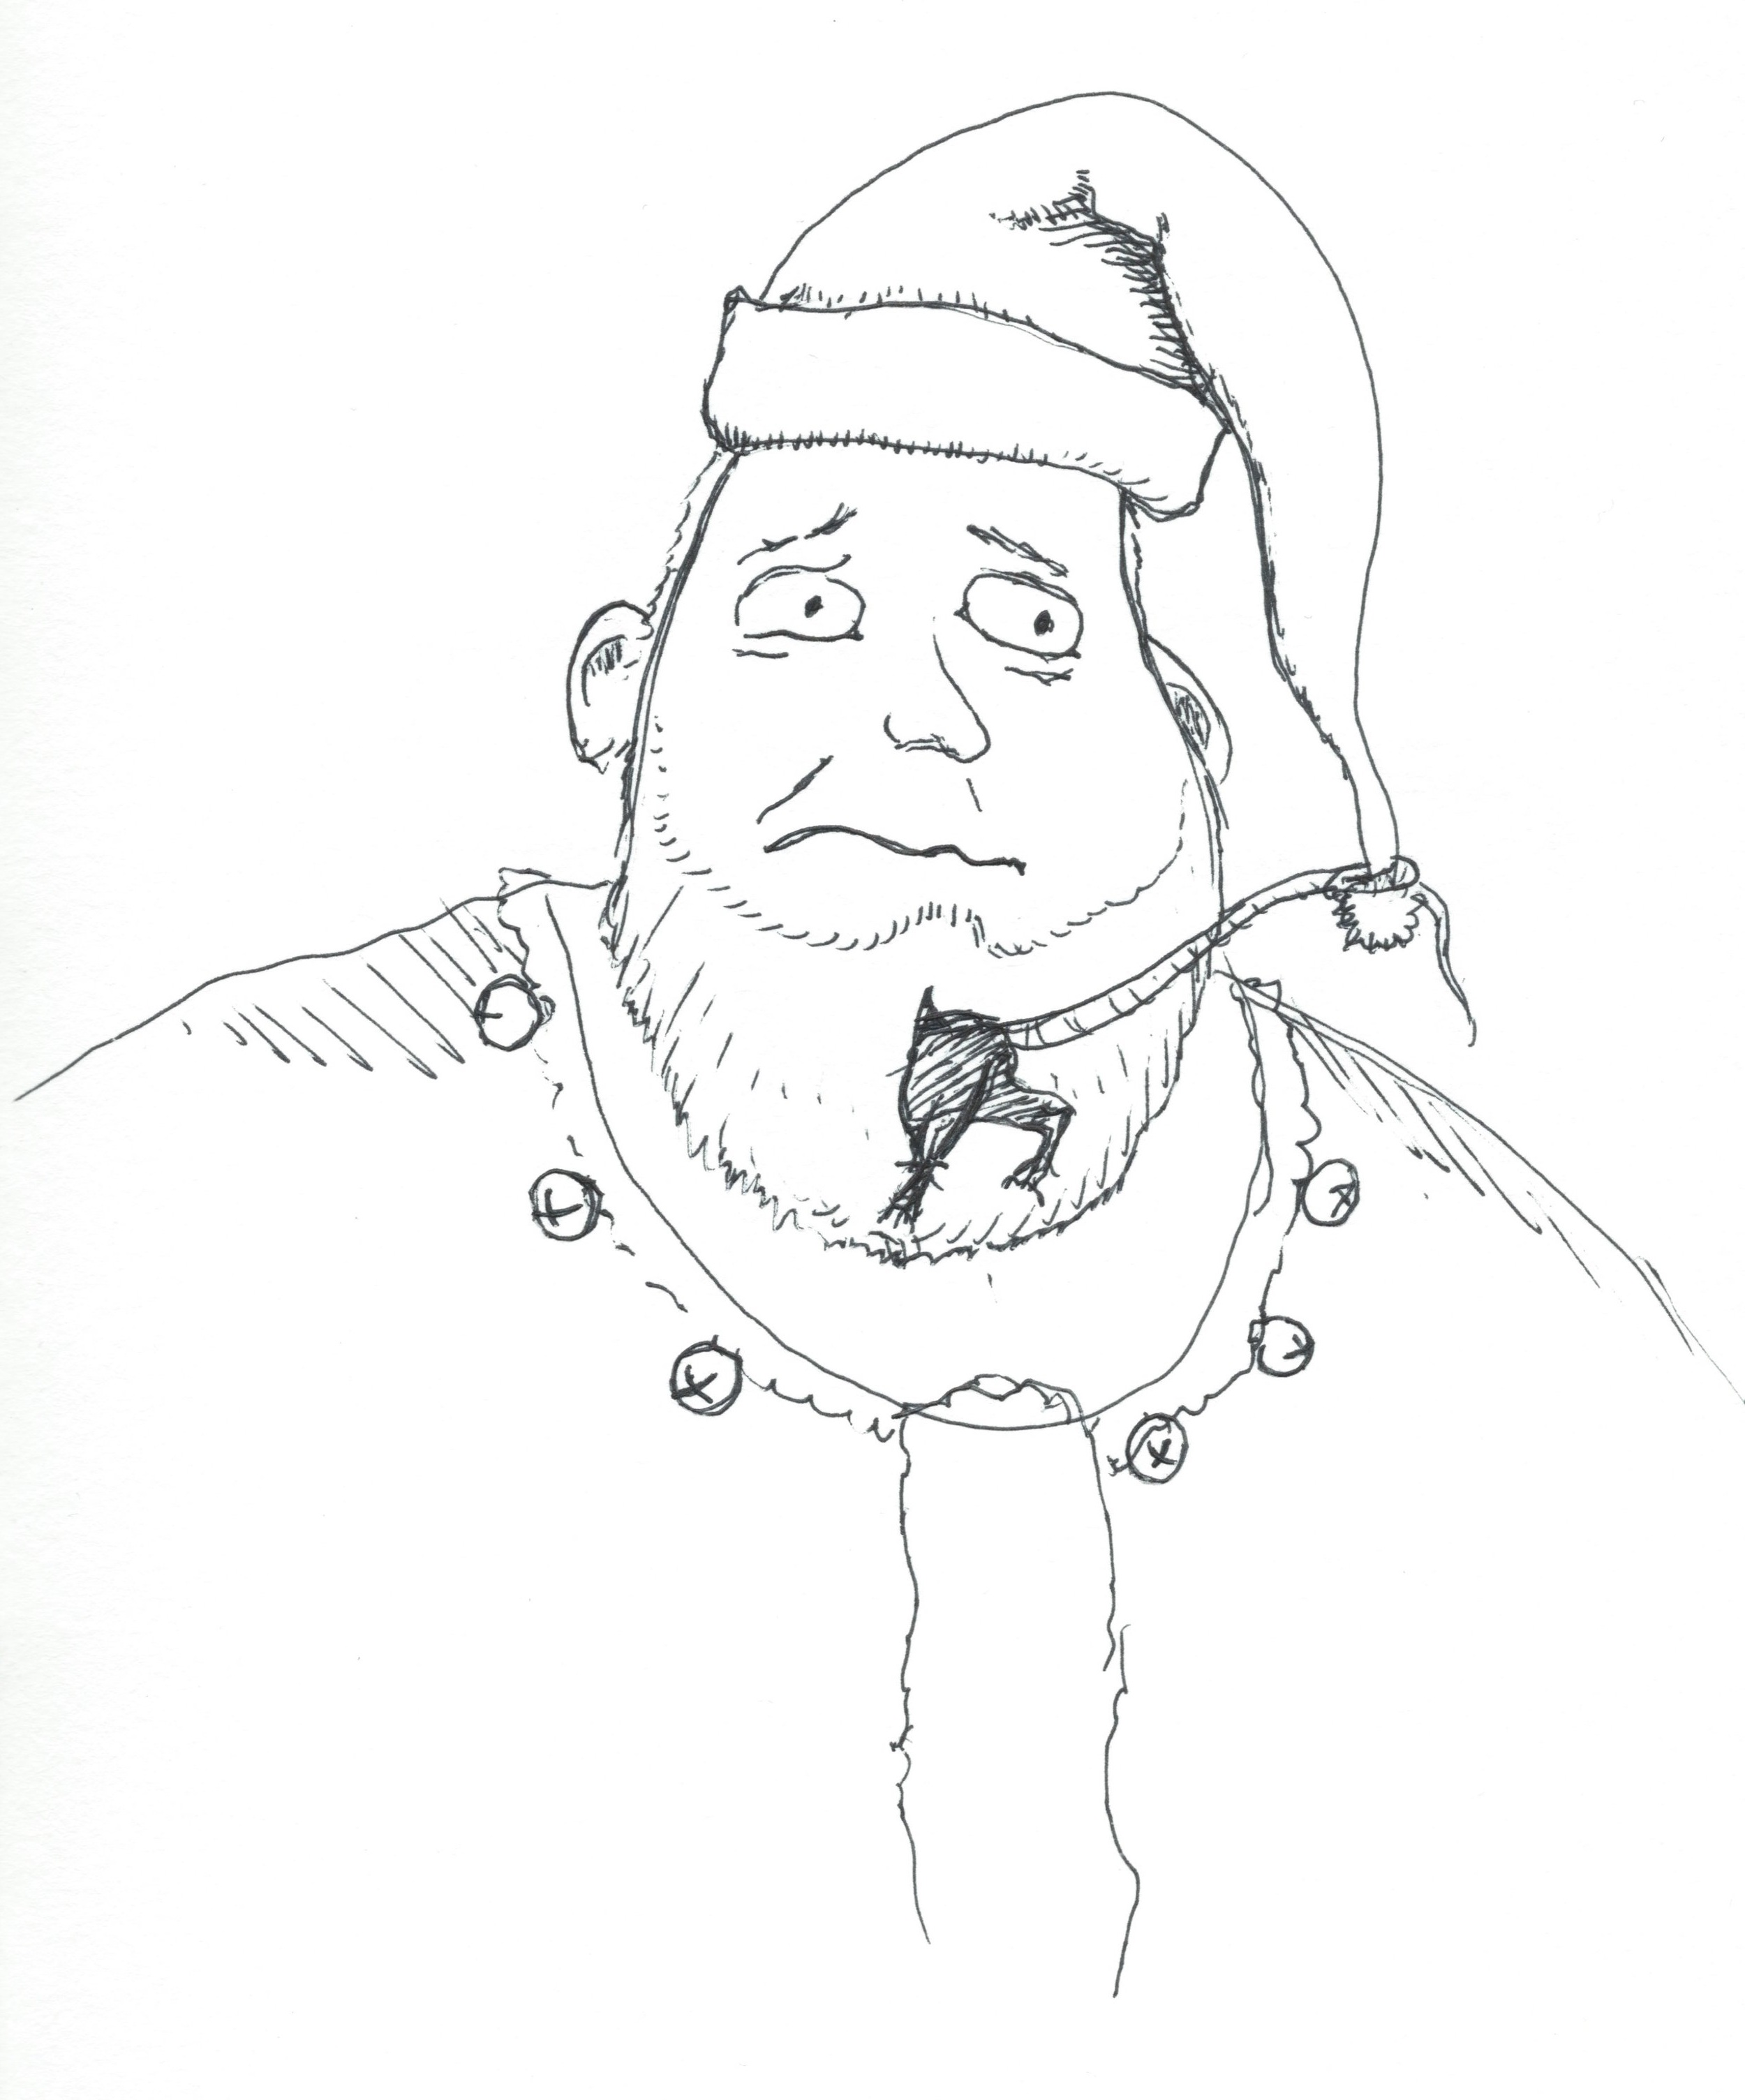 Rat Kringle, 2013. Ink on paper, 9 x 12 inches.